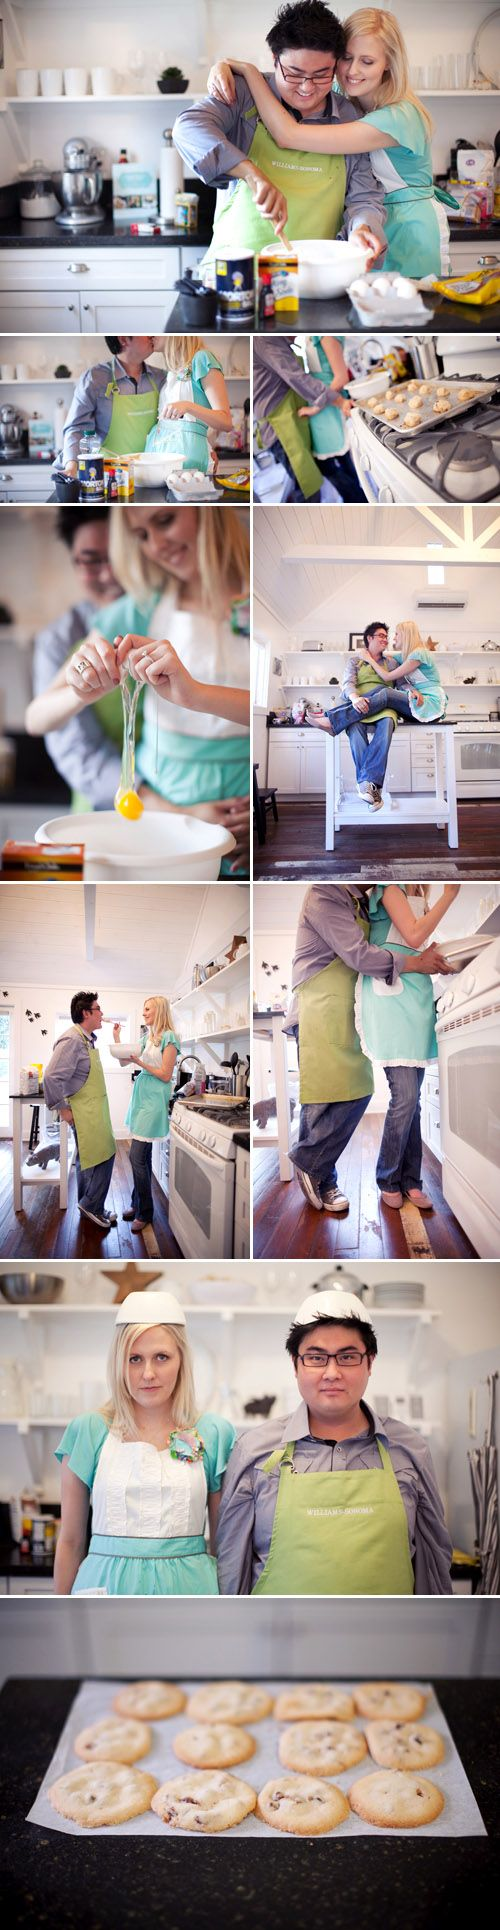 Chrissy and Anthony are getting married next spring, and when they told their photographer, Melissa Jill, about how much they enjoy taking cooking classes